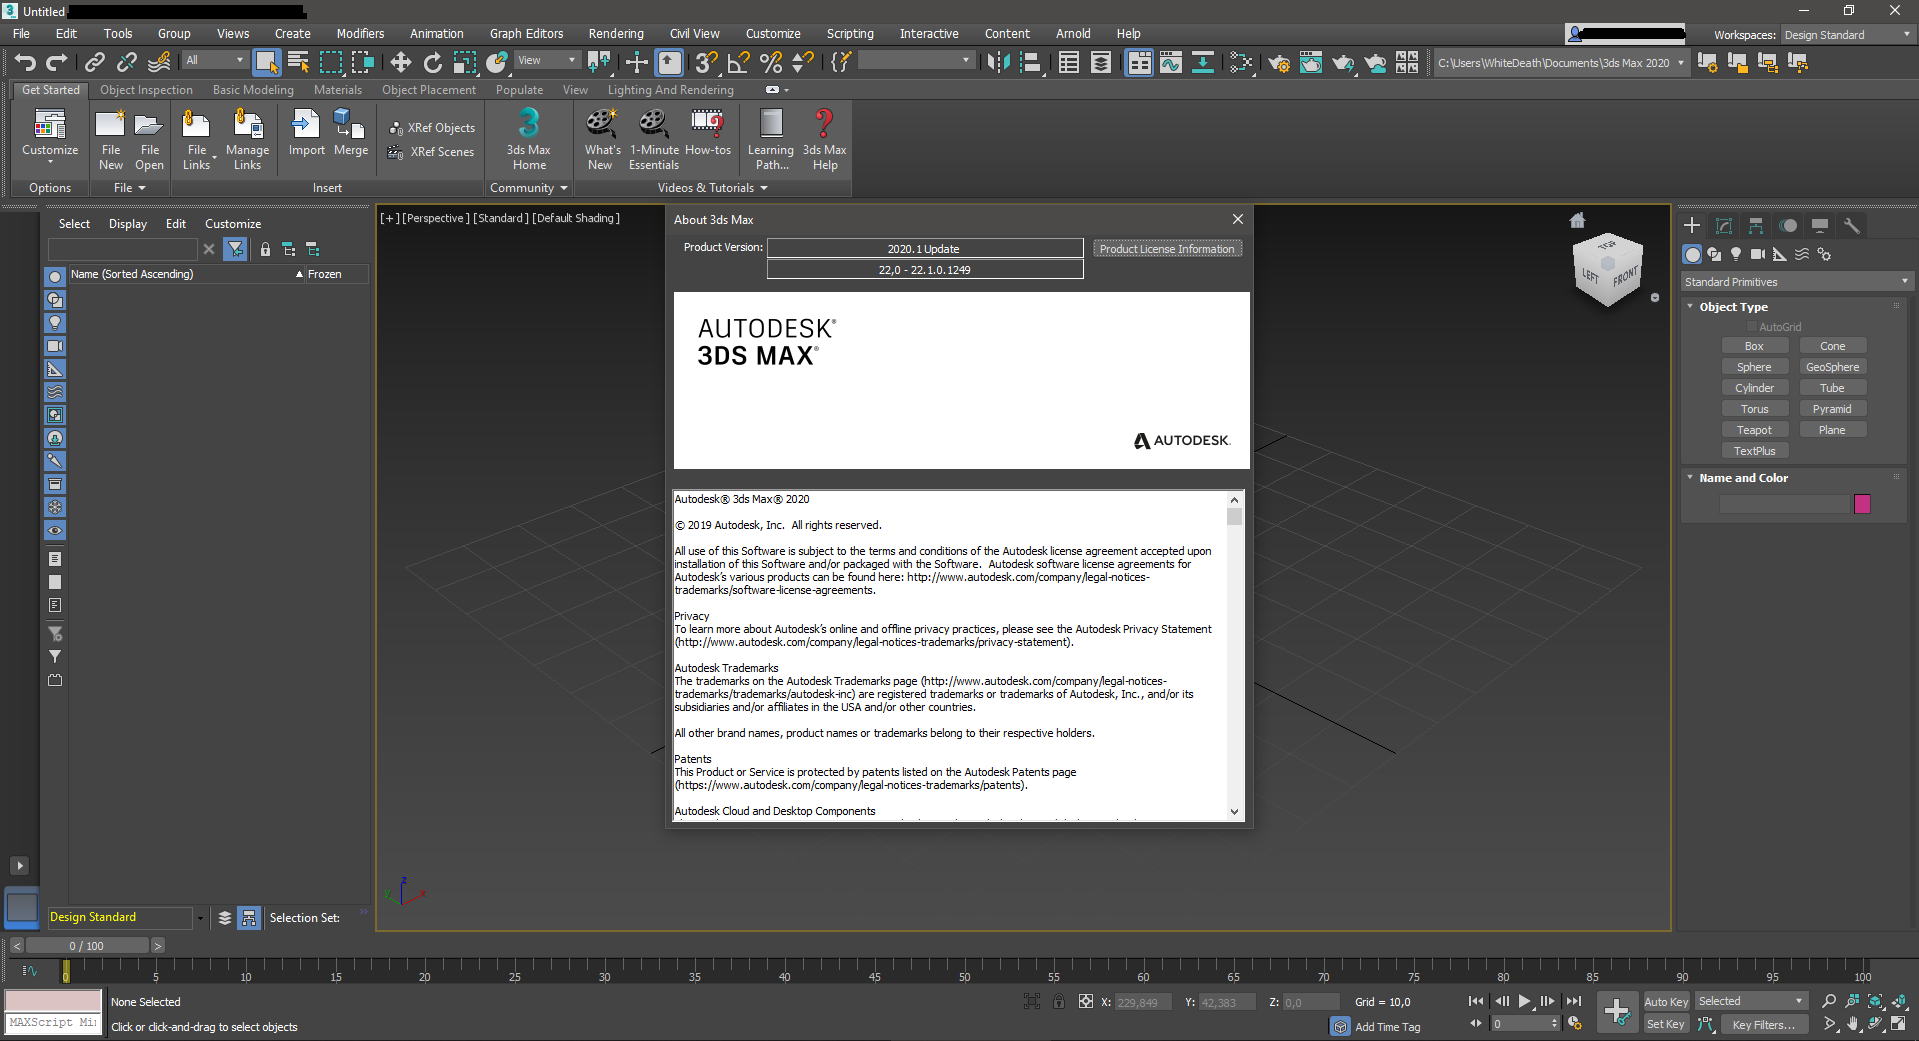 Autodesk 3ds Max 2020.1 Update Only